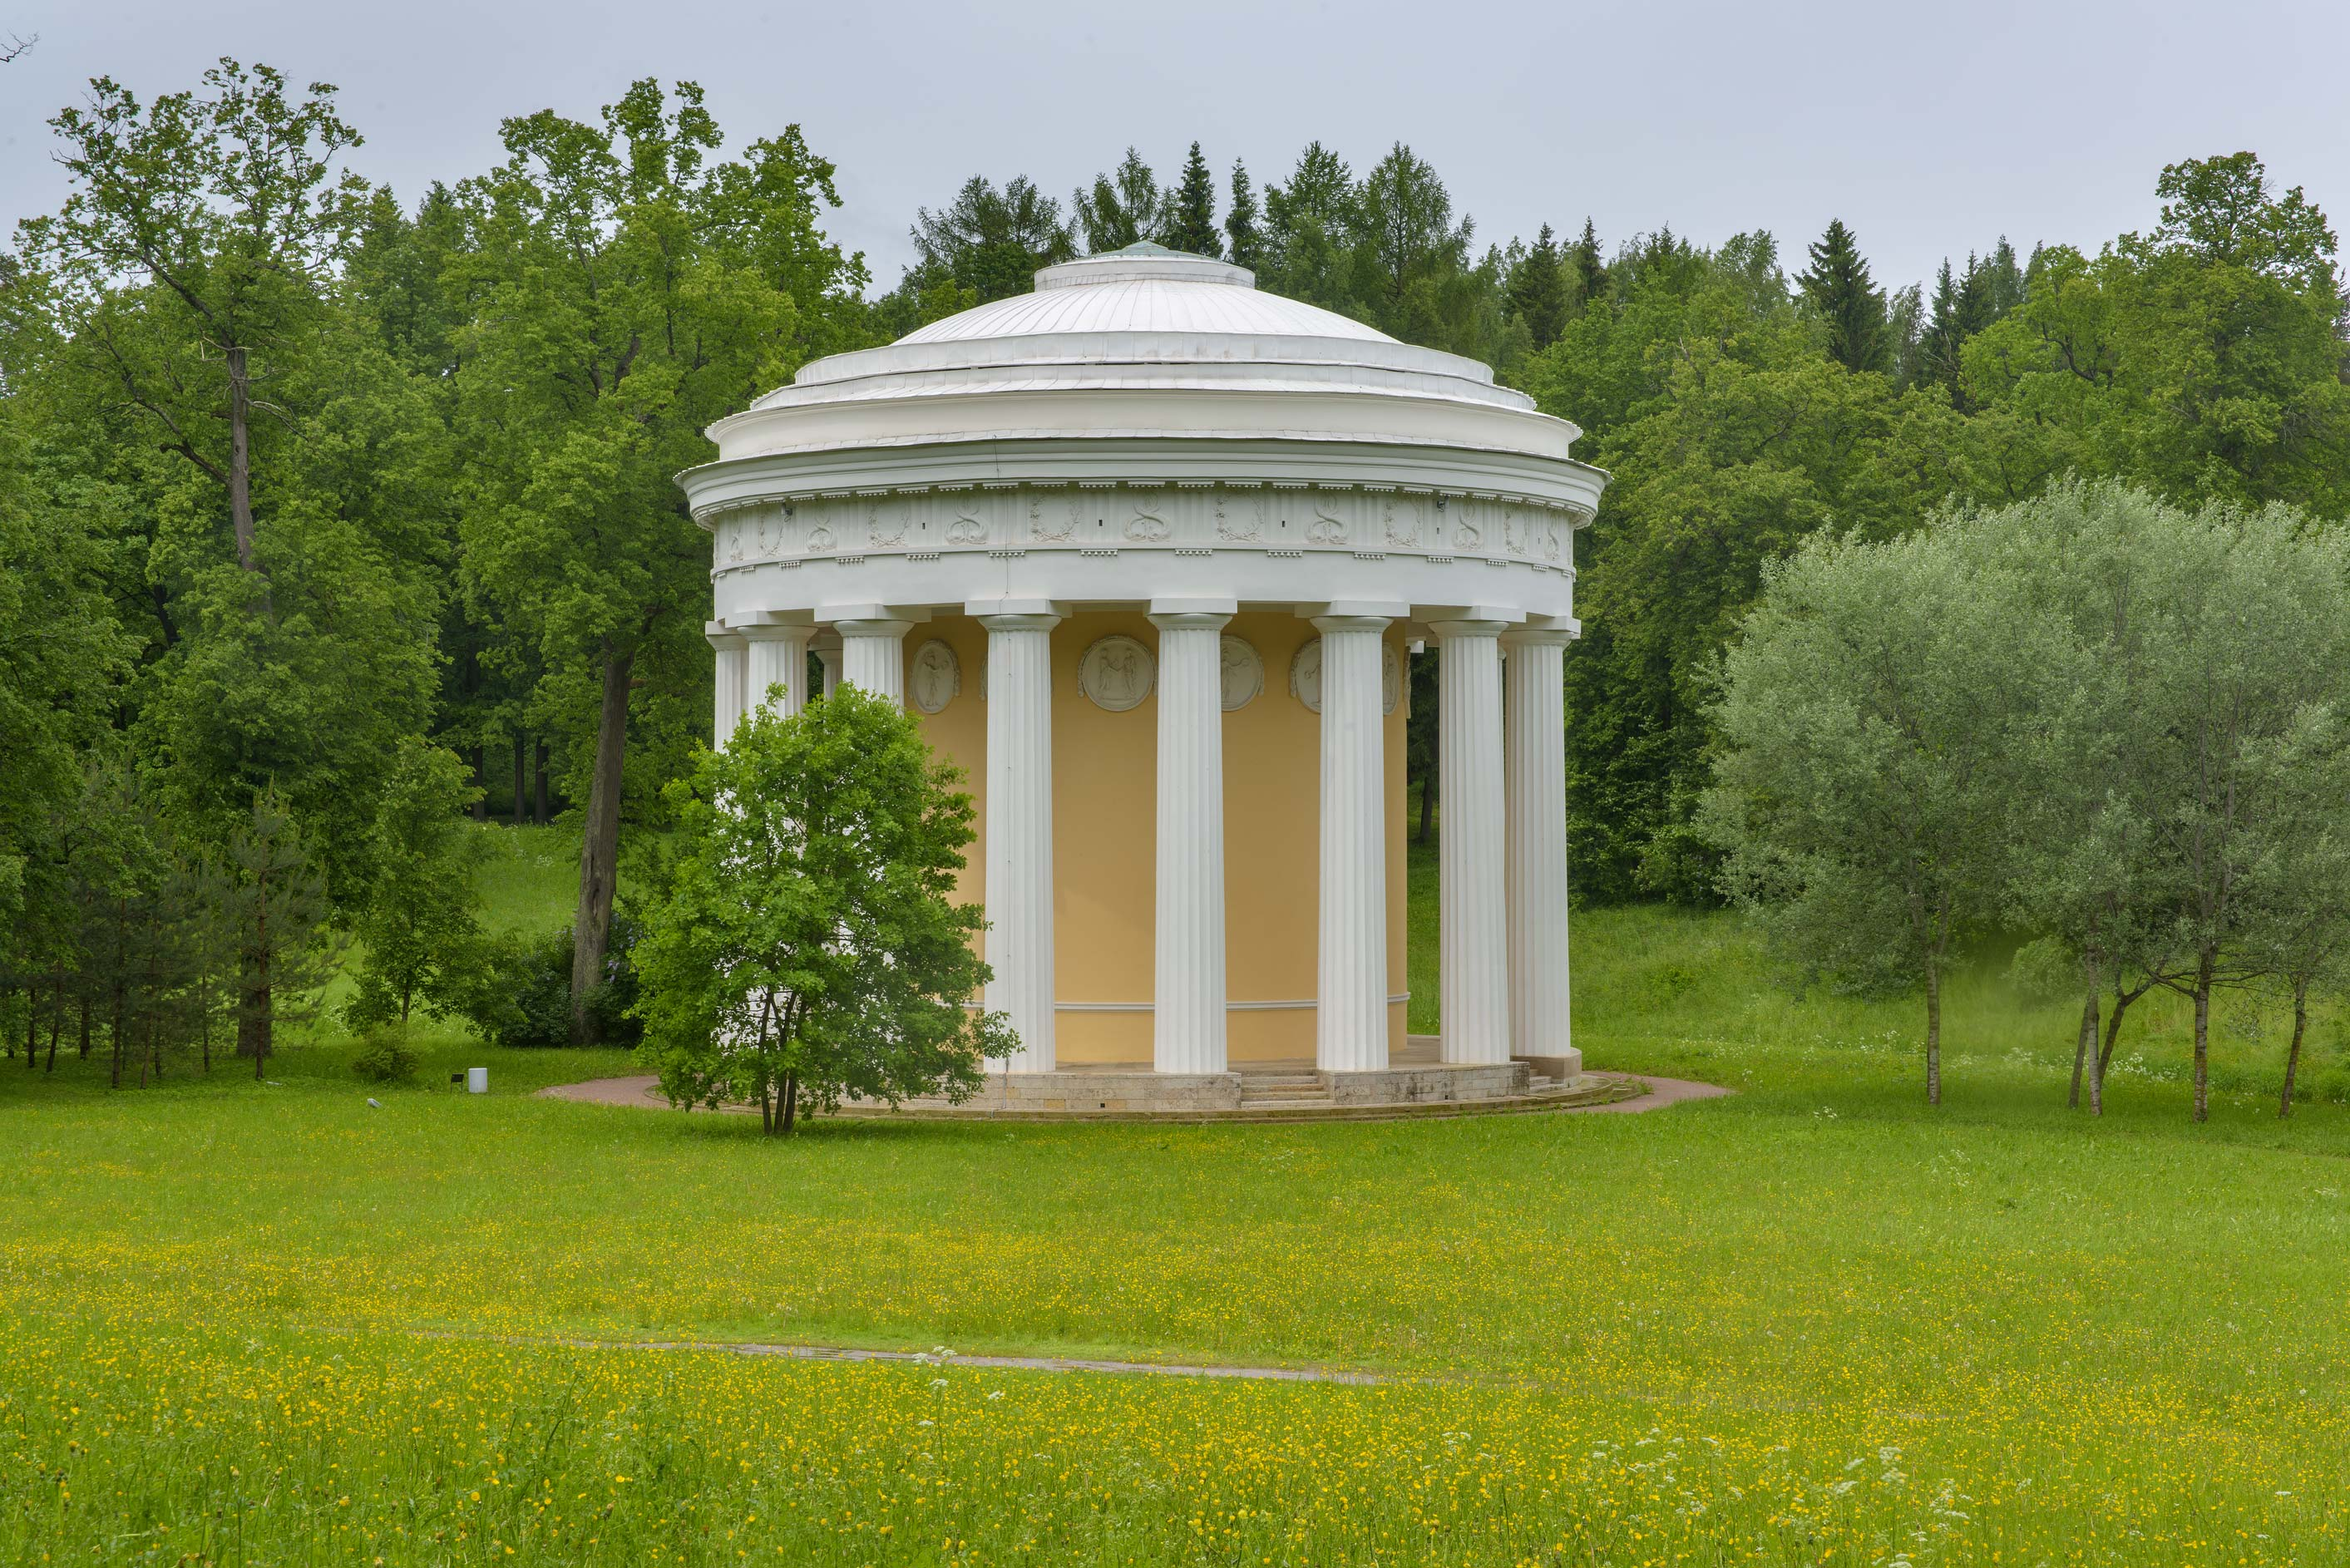 Khram Druzhby (Friendship Temple) in Pavlovsk...a suburb of St.Petersburg, Russia